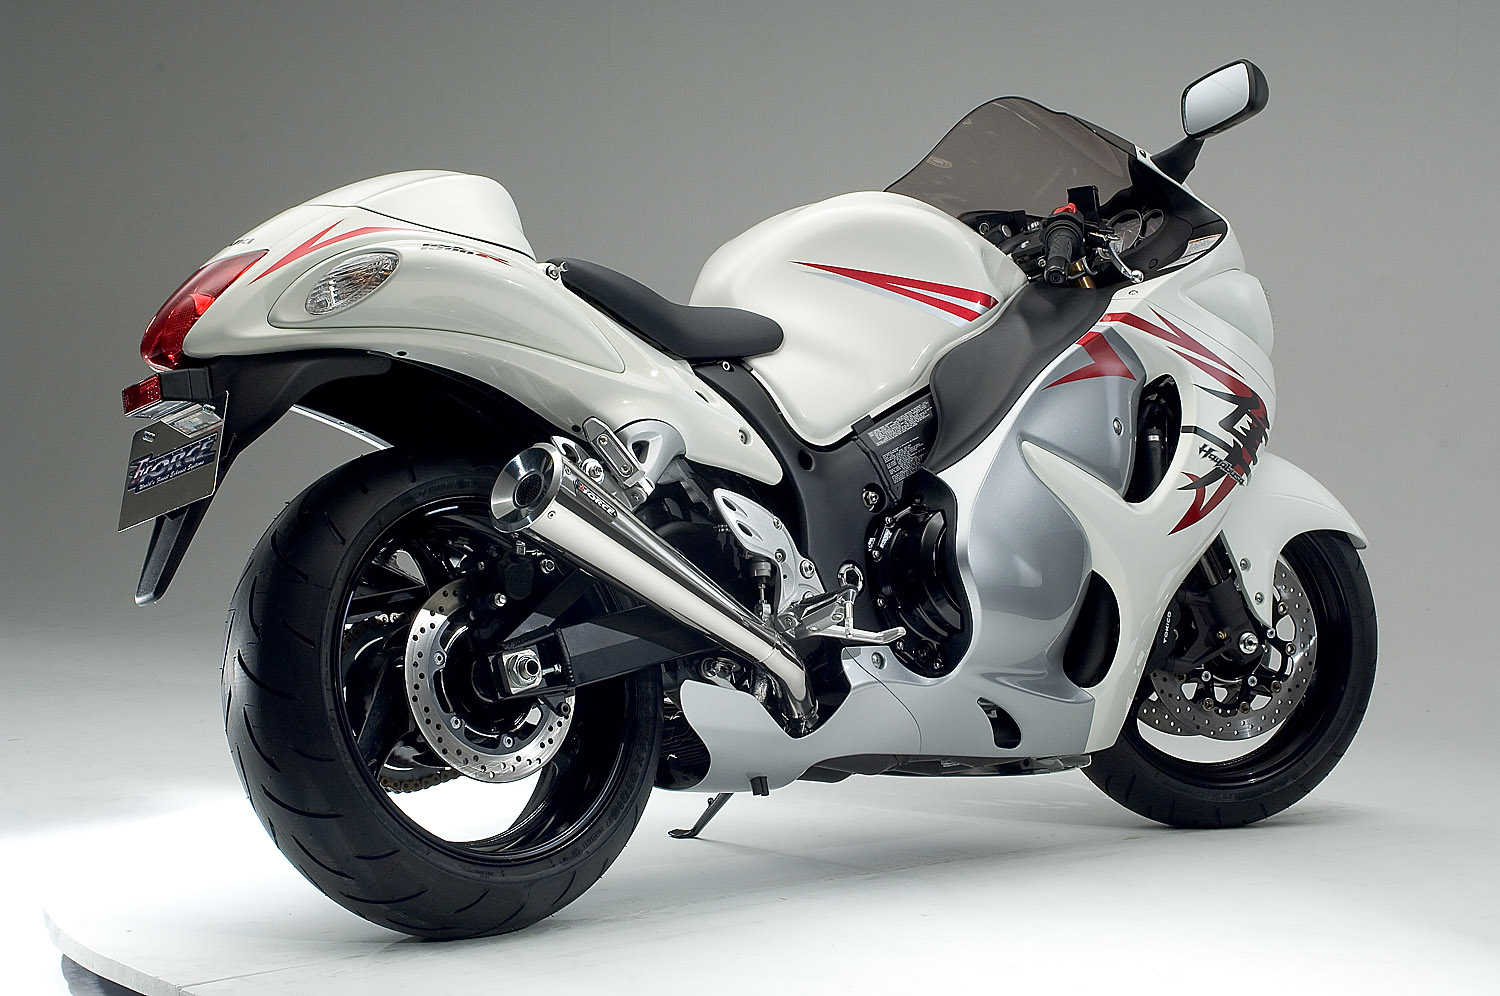 Street Bike Girl Wallpapers This Article Suzuki Hayabusa Gsx1300r Pictures And